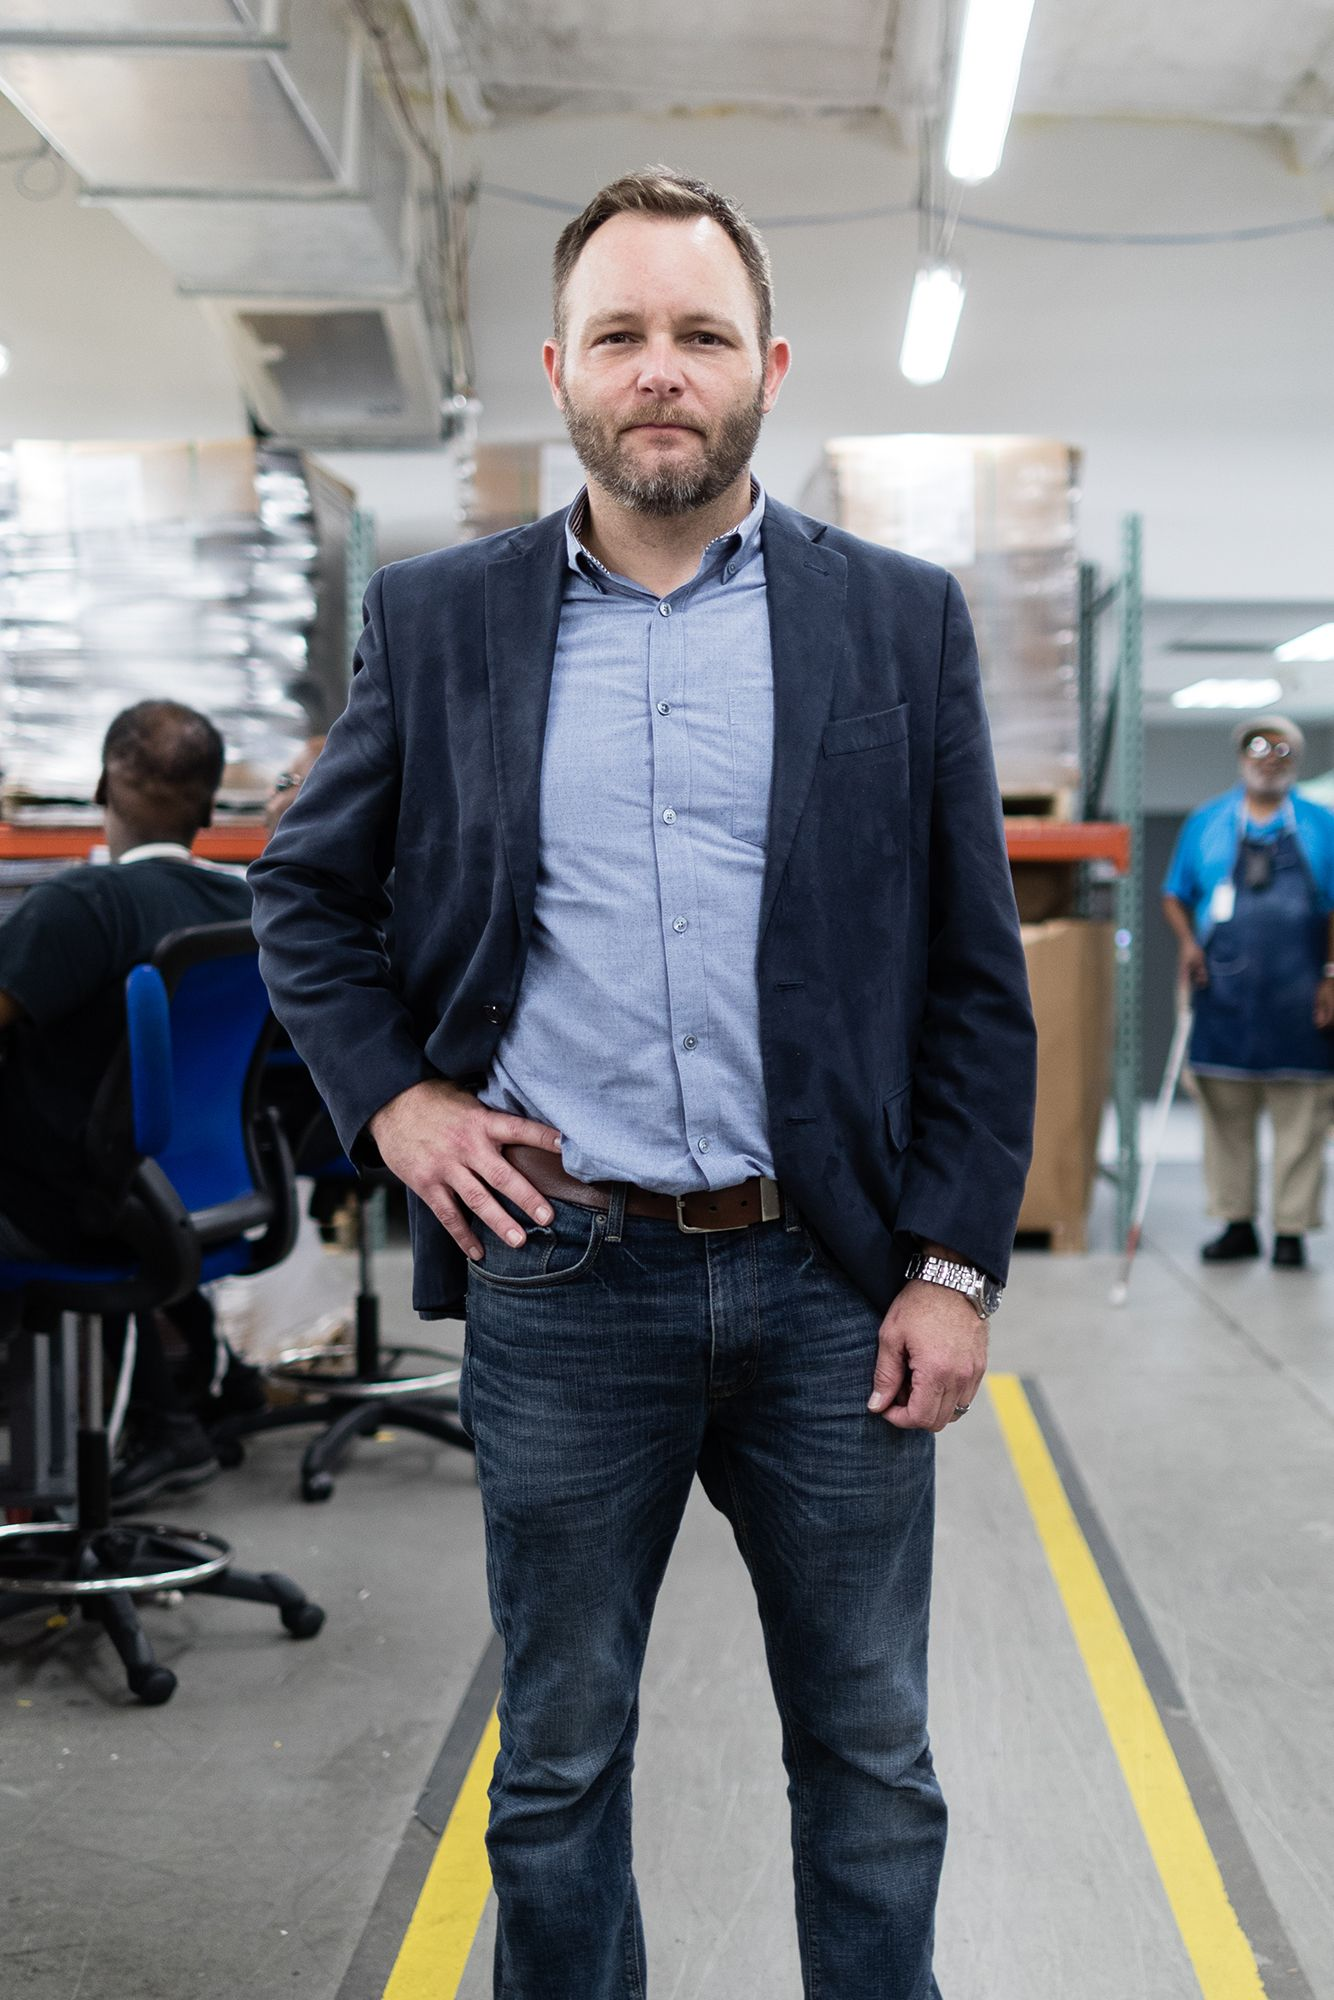 Kyle Johnson, CEO of Lighthouse Works